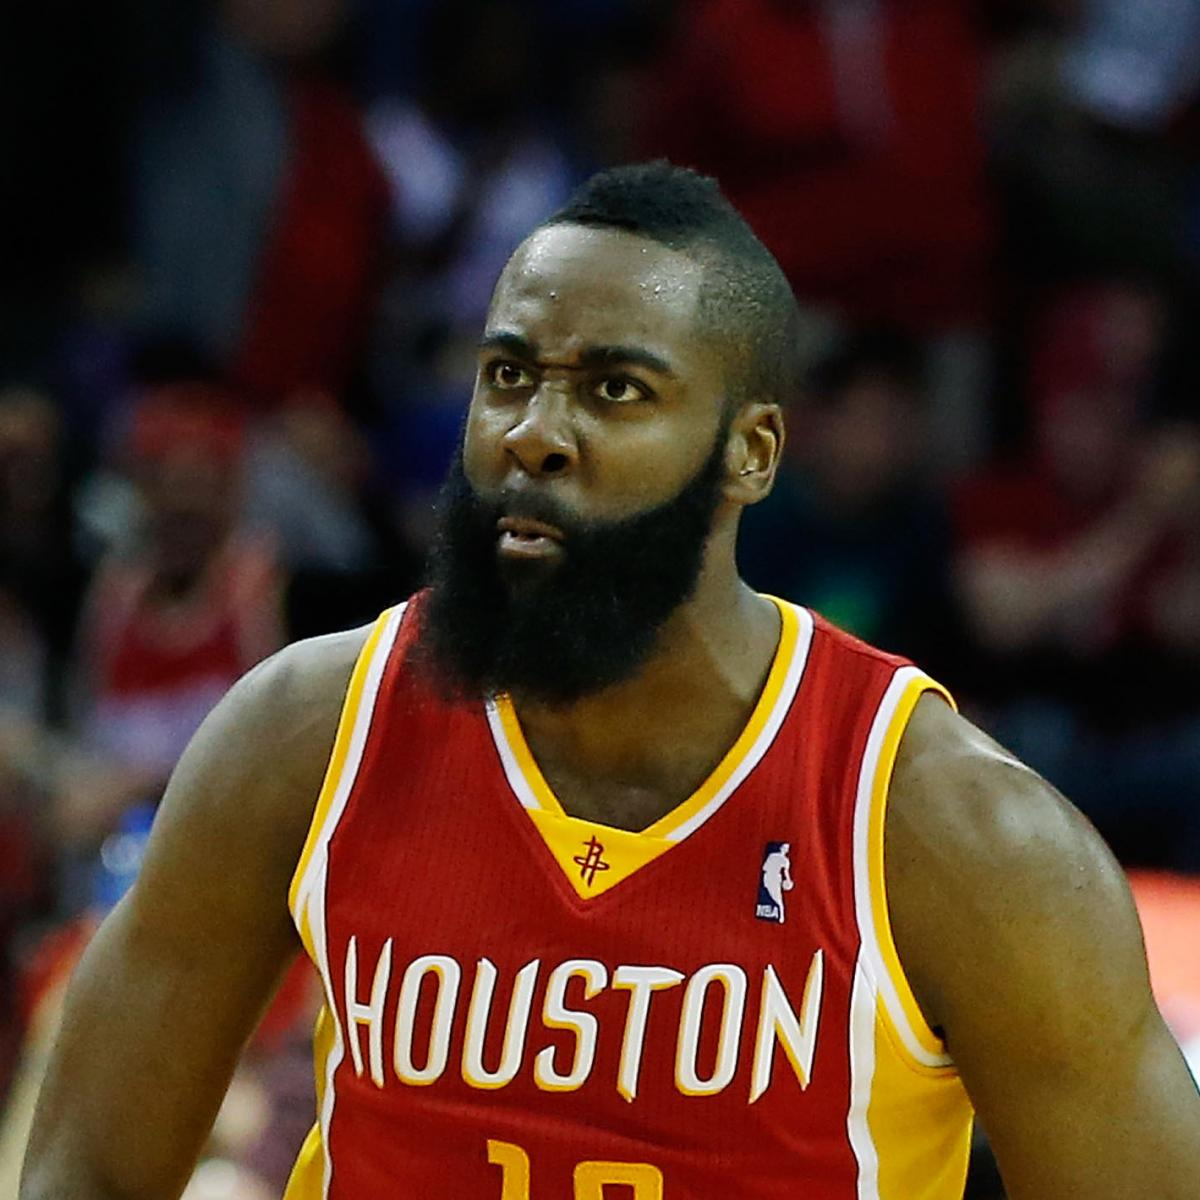 James Harden Free Agency: James Harden Proving OKC Thunder Made Wrong Decision